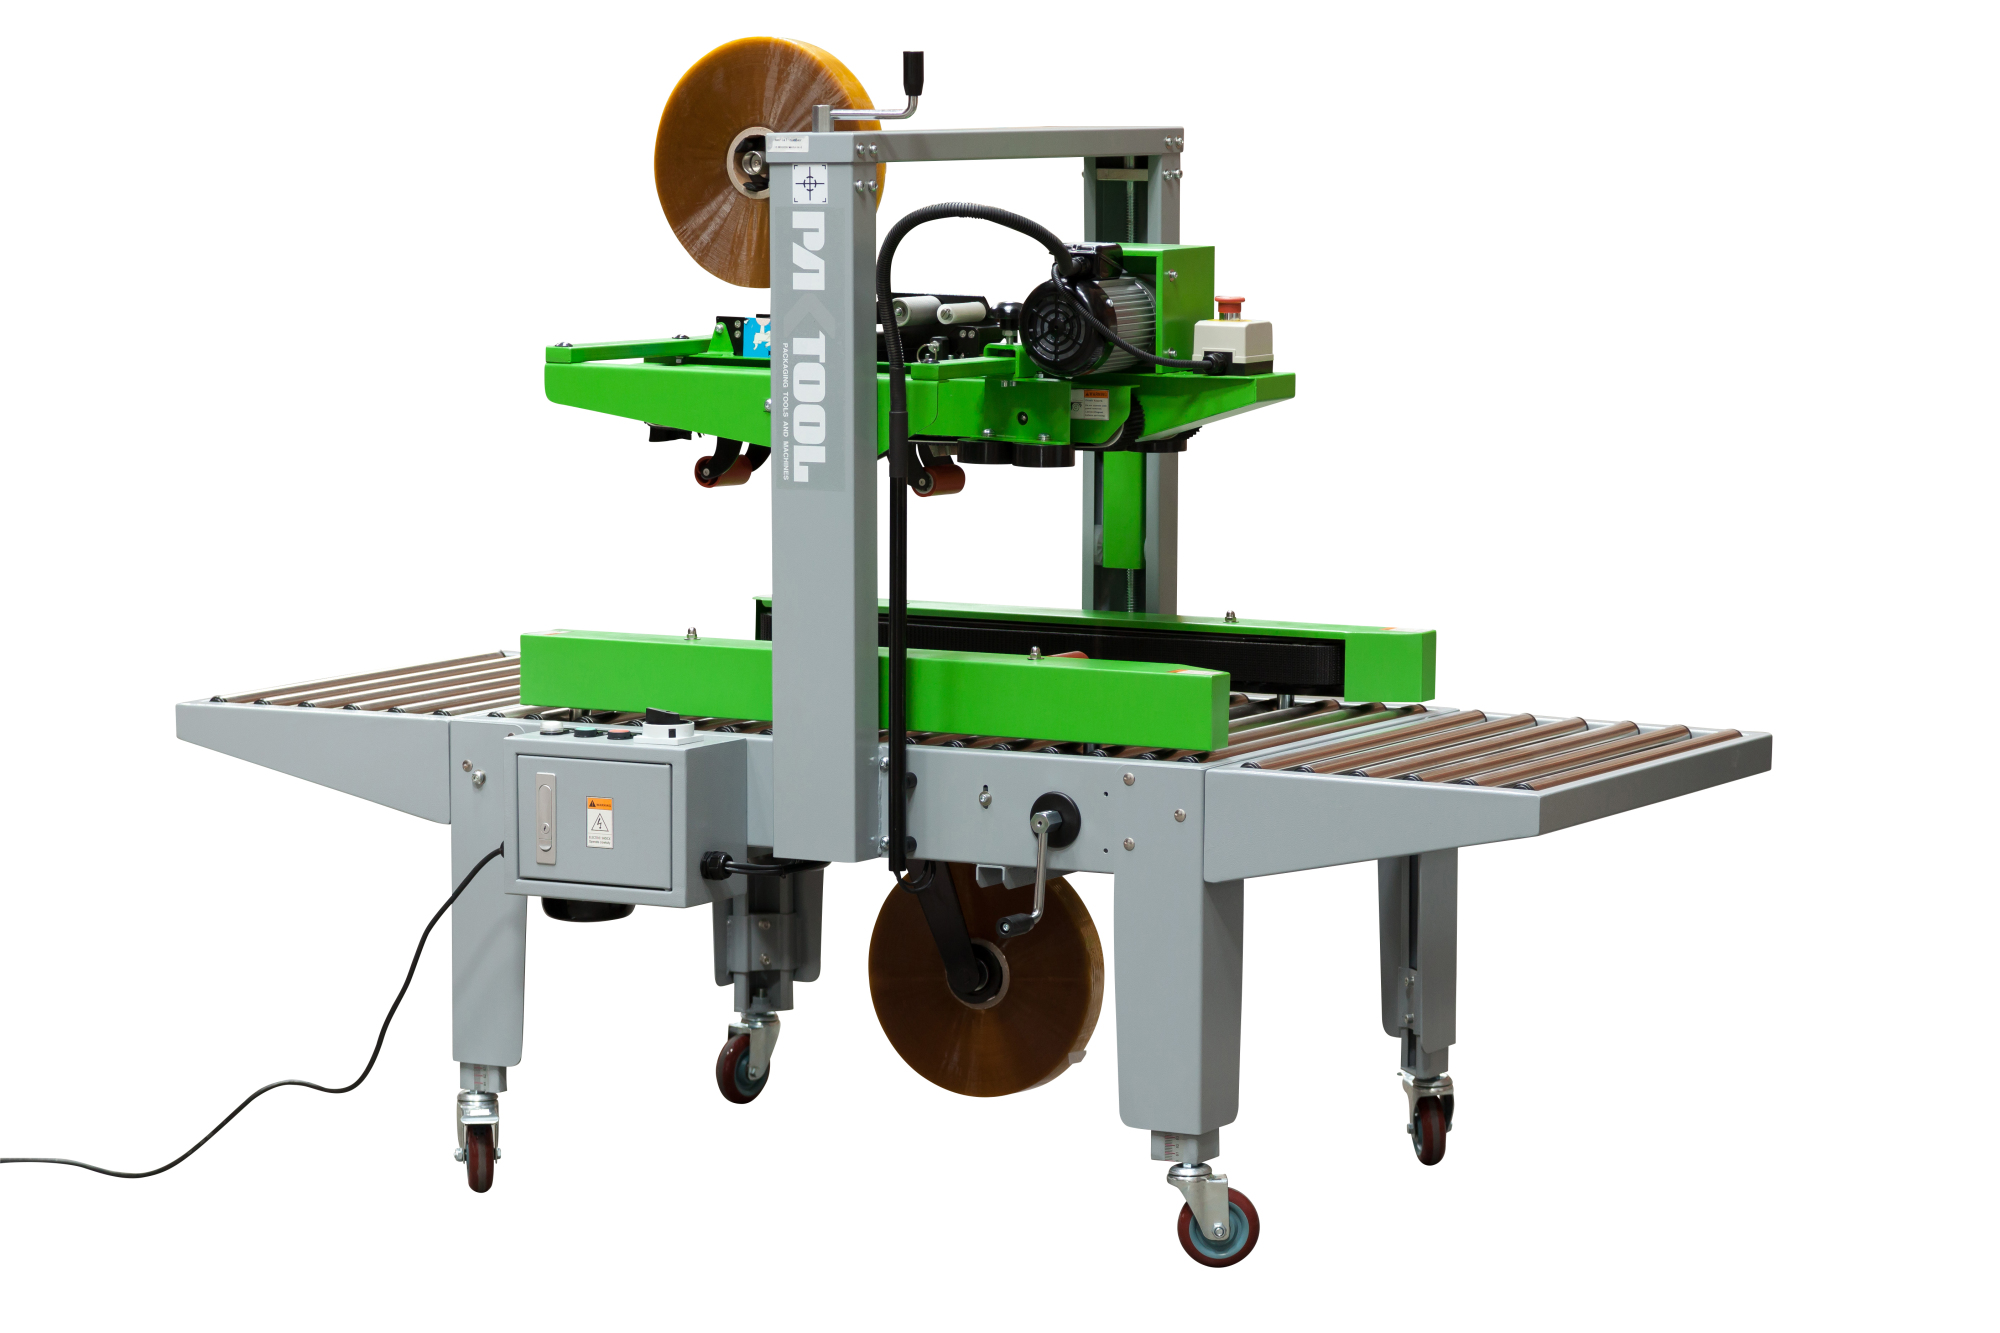 PAKTOOL Automatic Carton Sealer with Top and Side Drive Belts